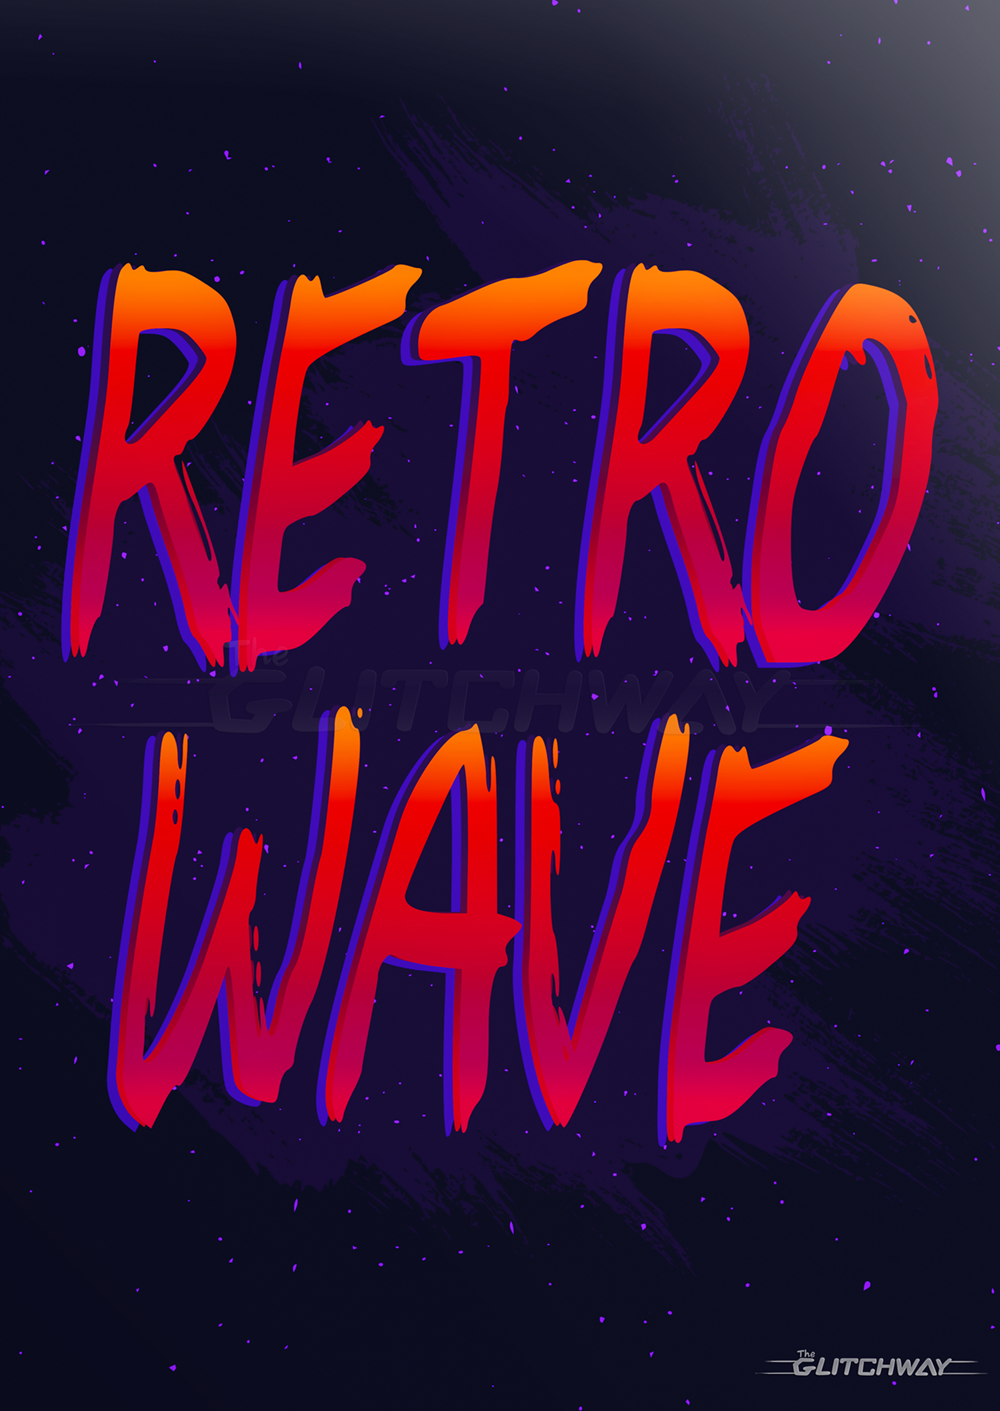 New Retro Wave Text Vintage 1980s Synthwave HD Wallpaper